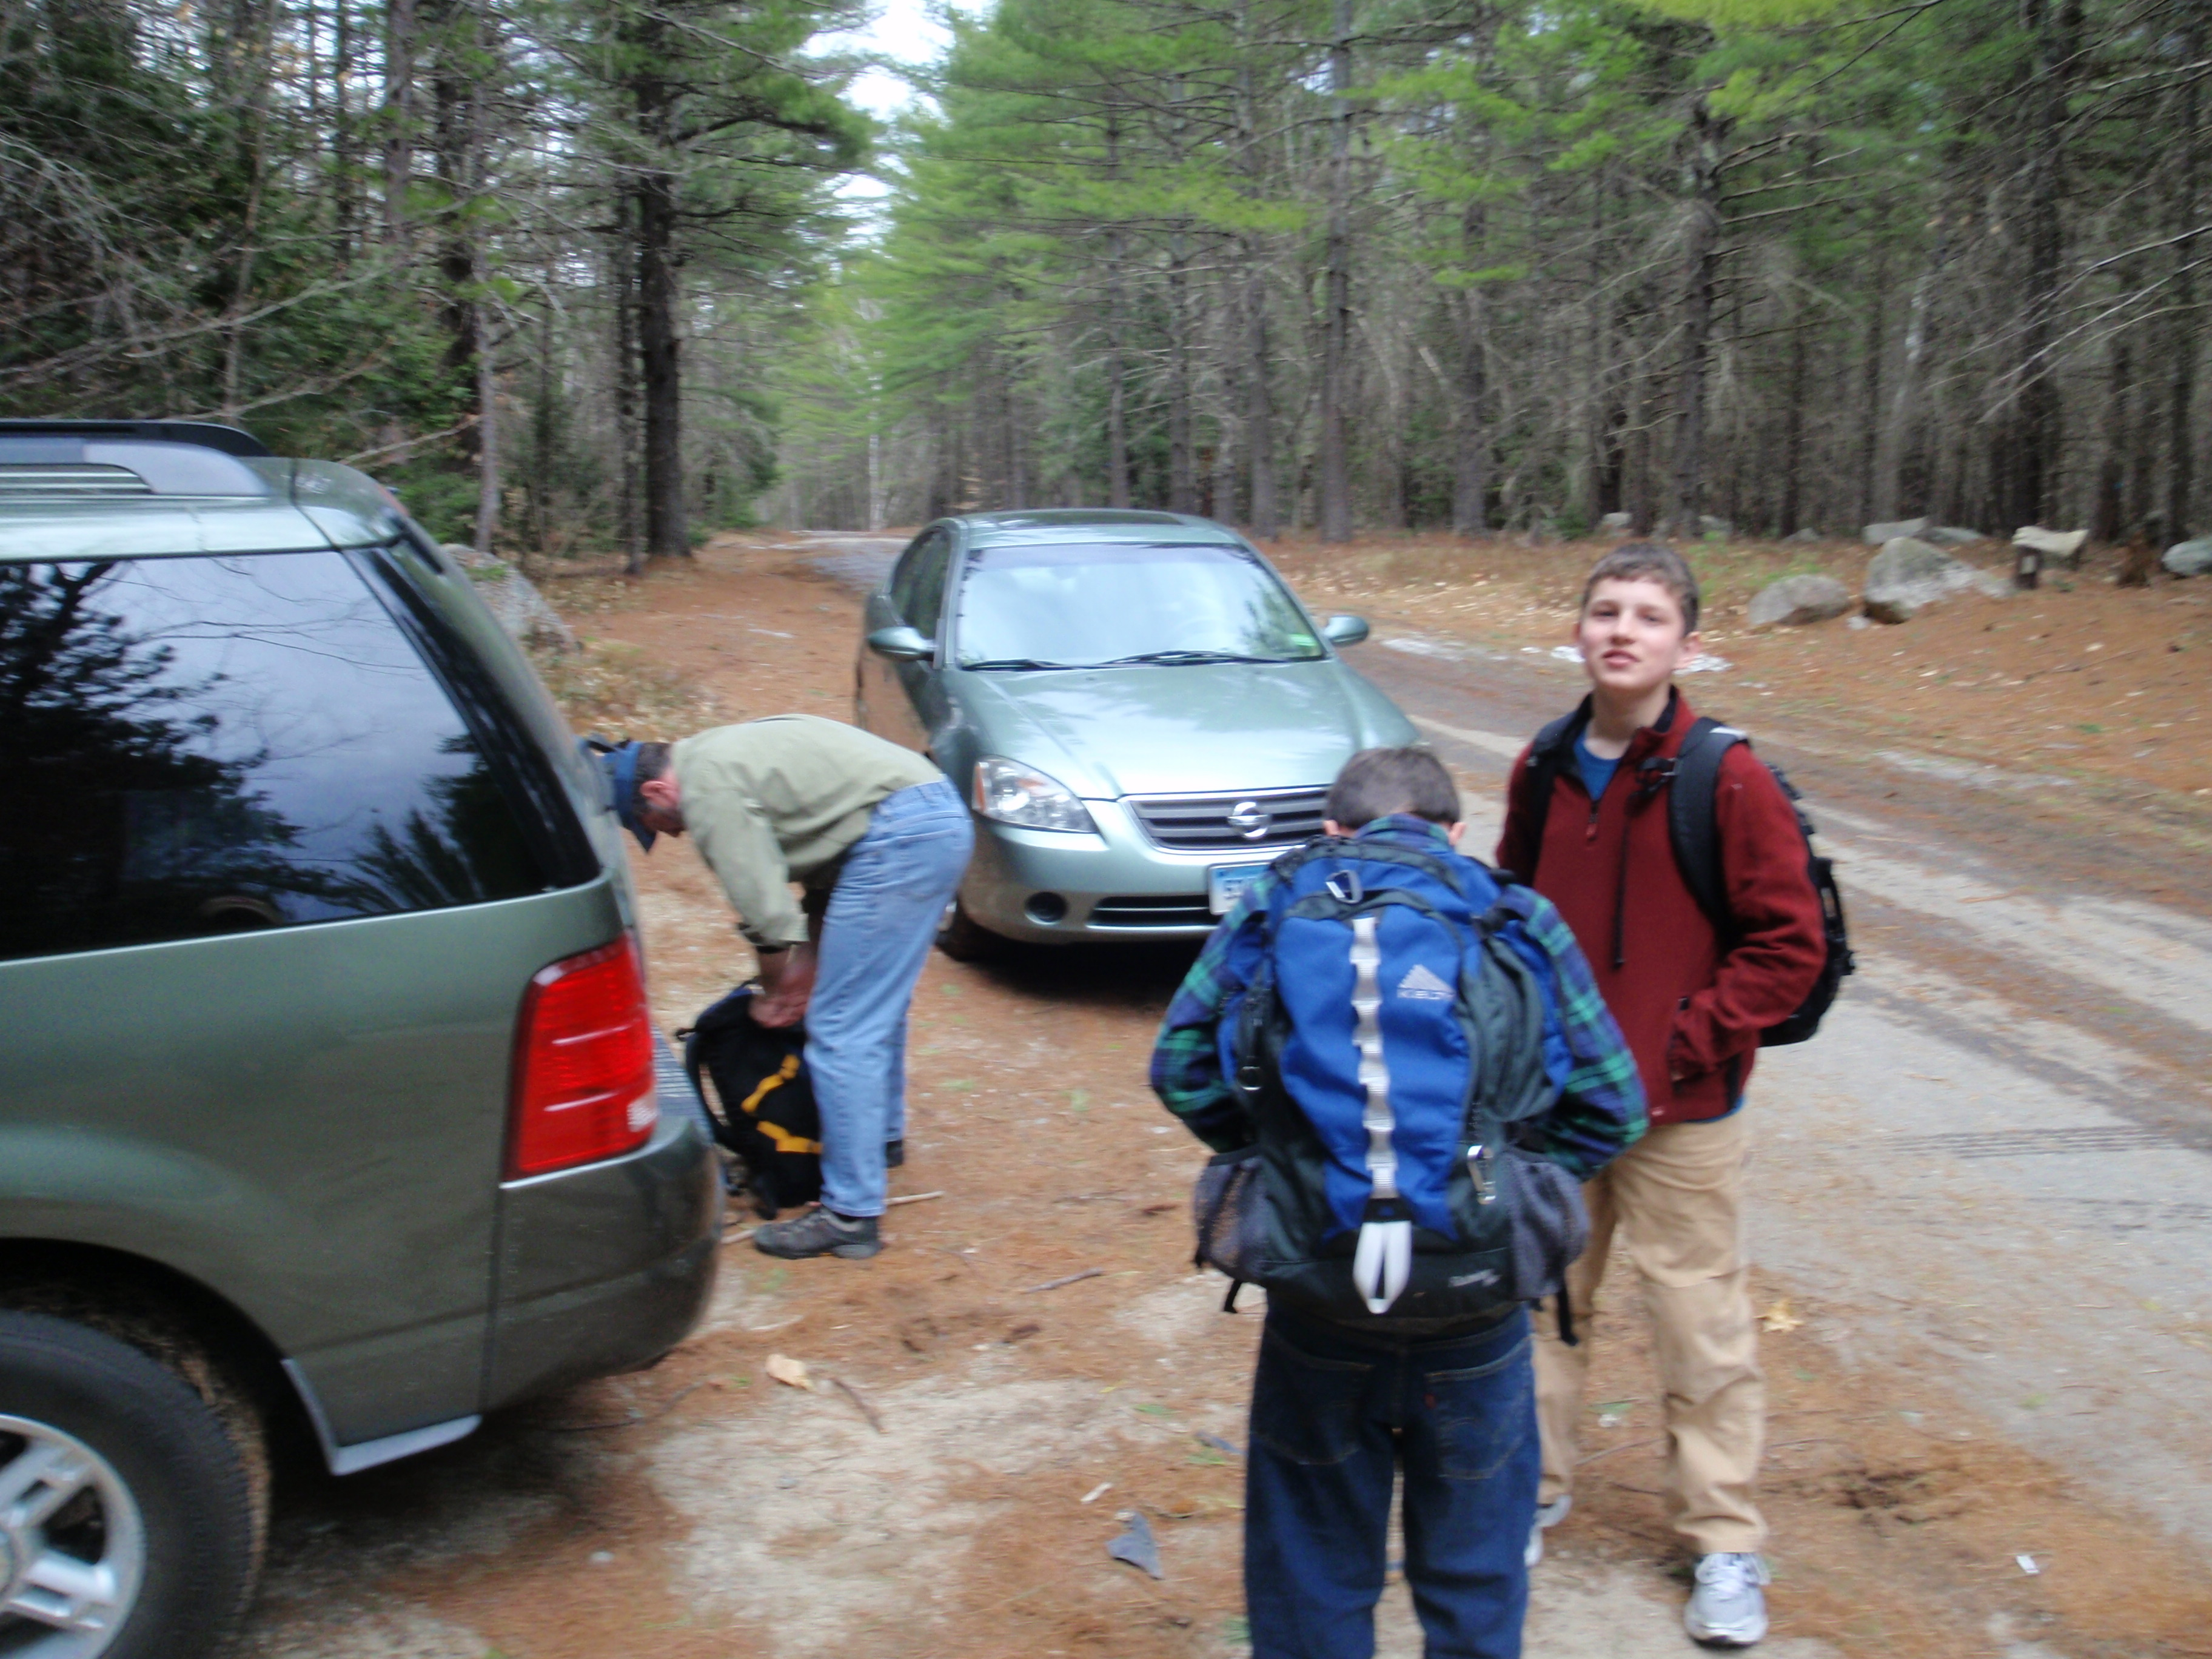 Gearing up on the Cathedral Ledge Auto Road